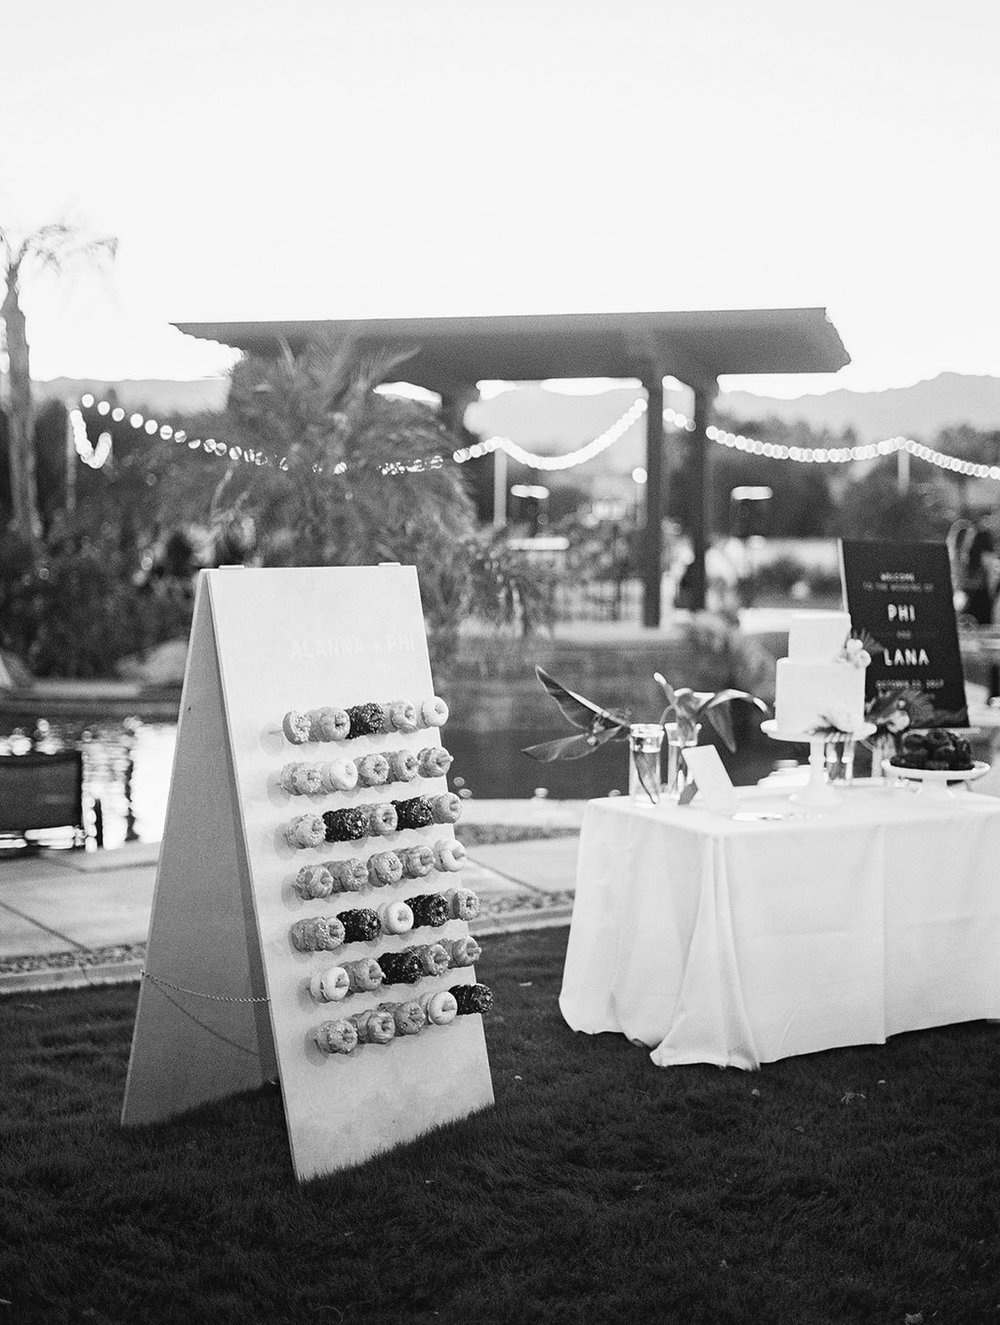 Phi and Alannas Backyard Wedding in Palm Springs California 44.jpg